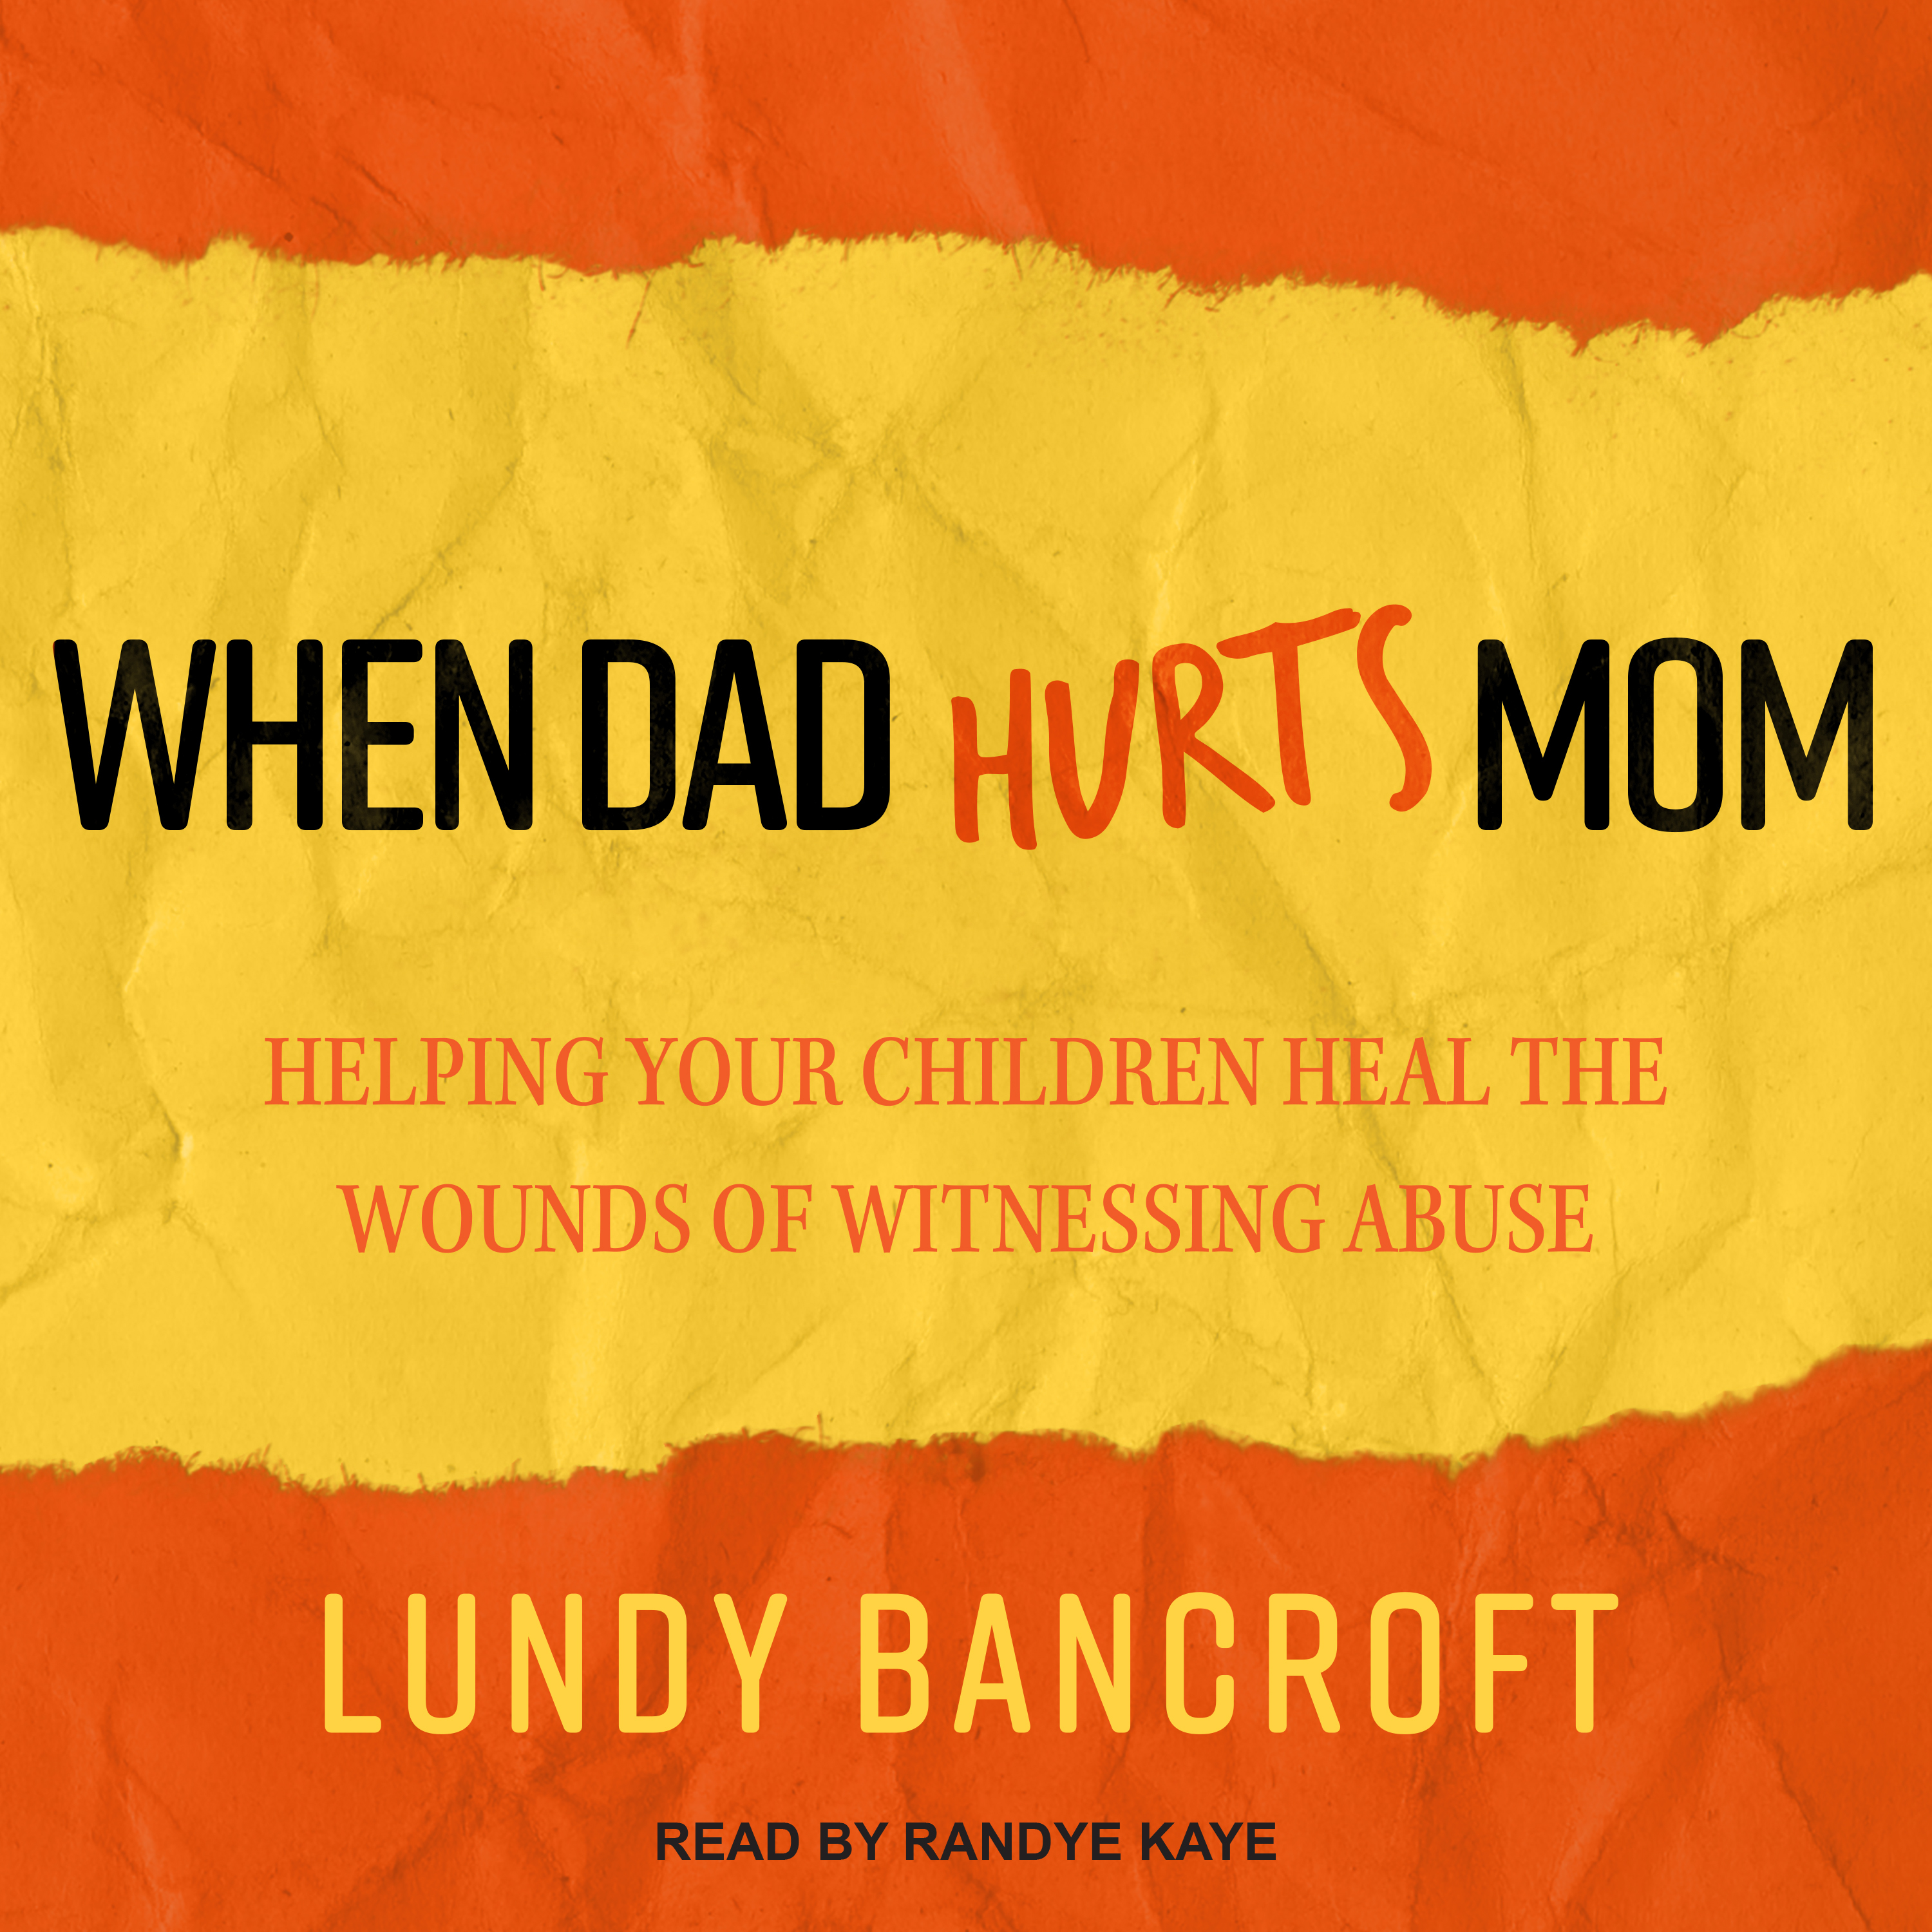 Printable When Dad Hurts Mom: Helping Your Children Heal the Wounds of Witnessing Abuse Audiobook Cover Art